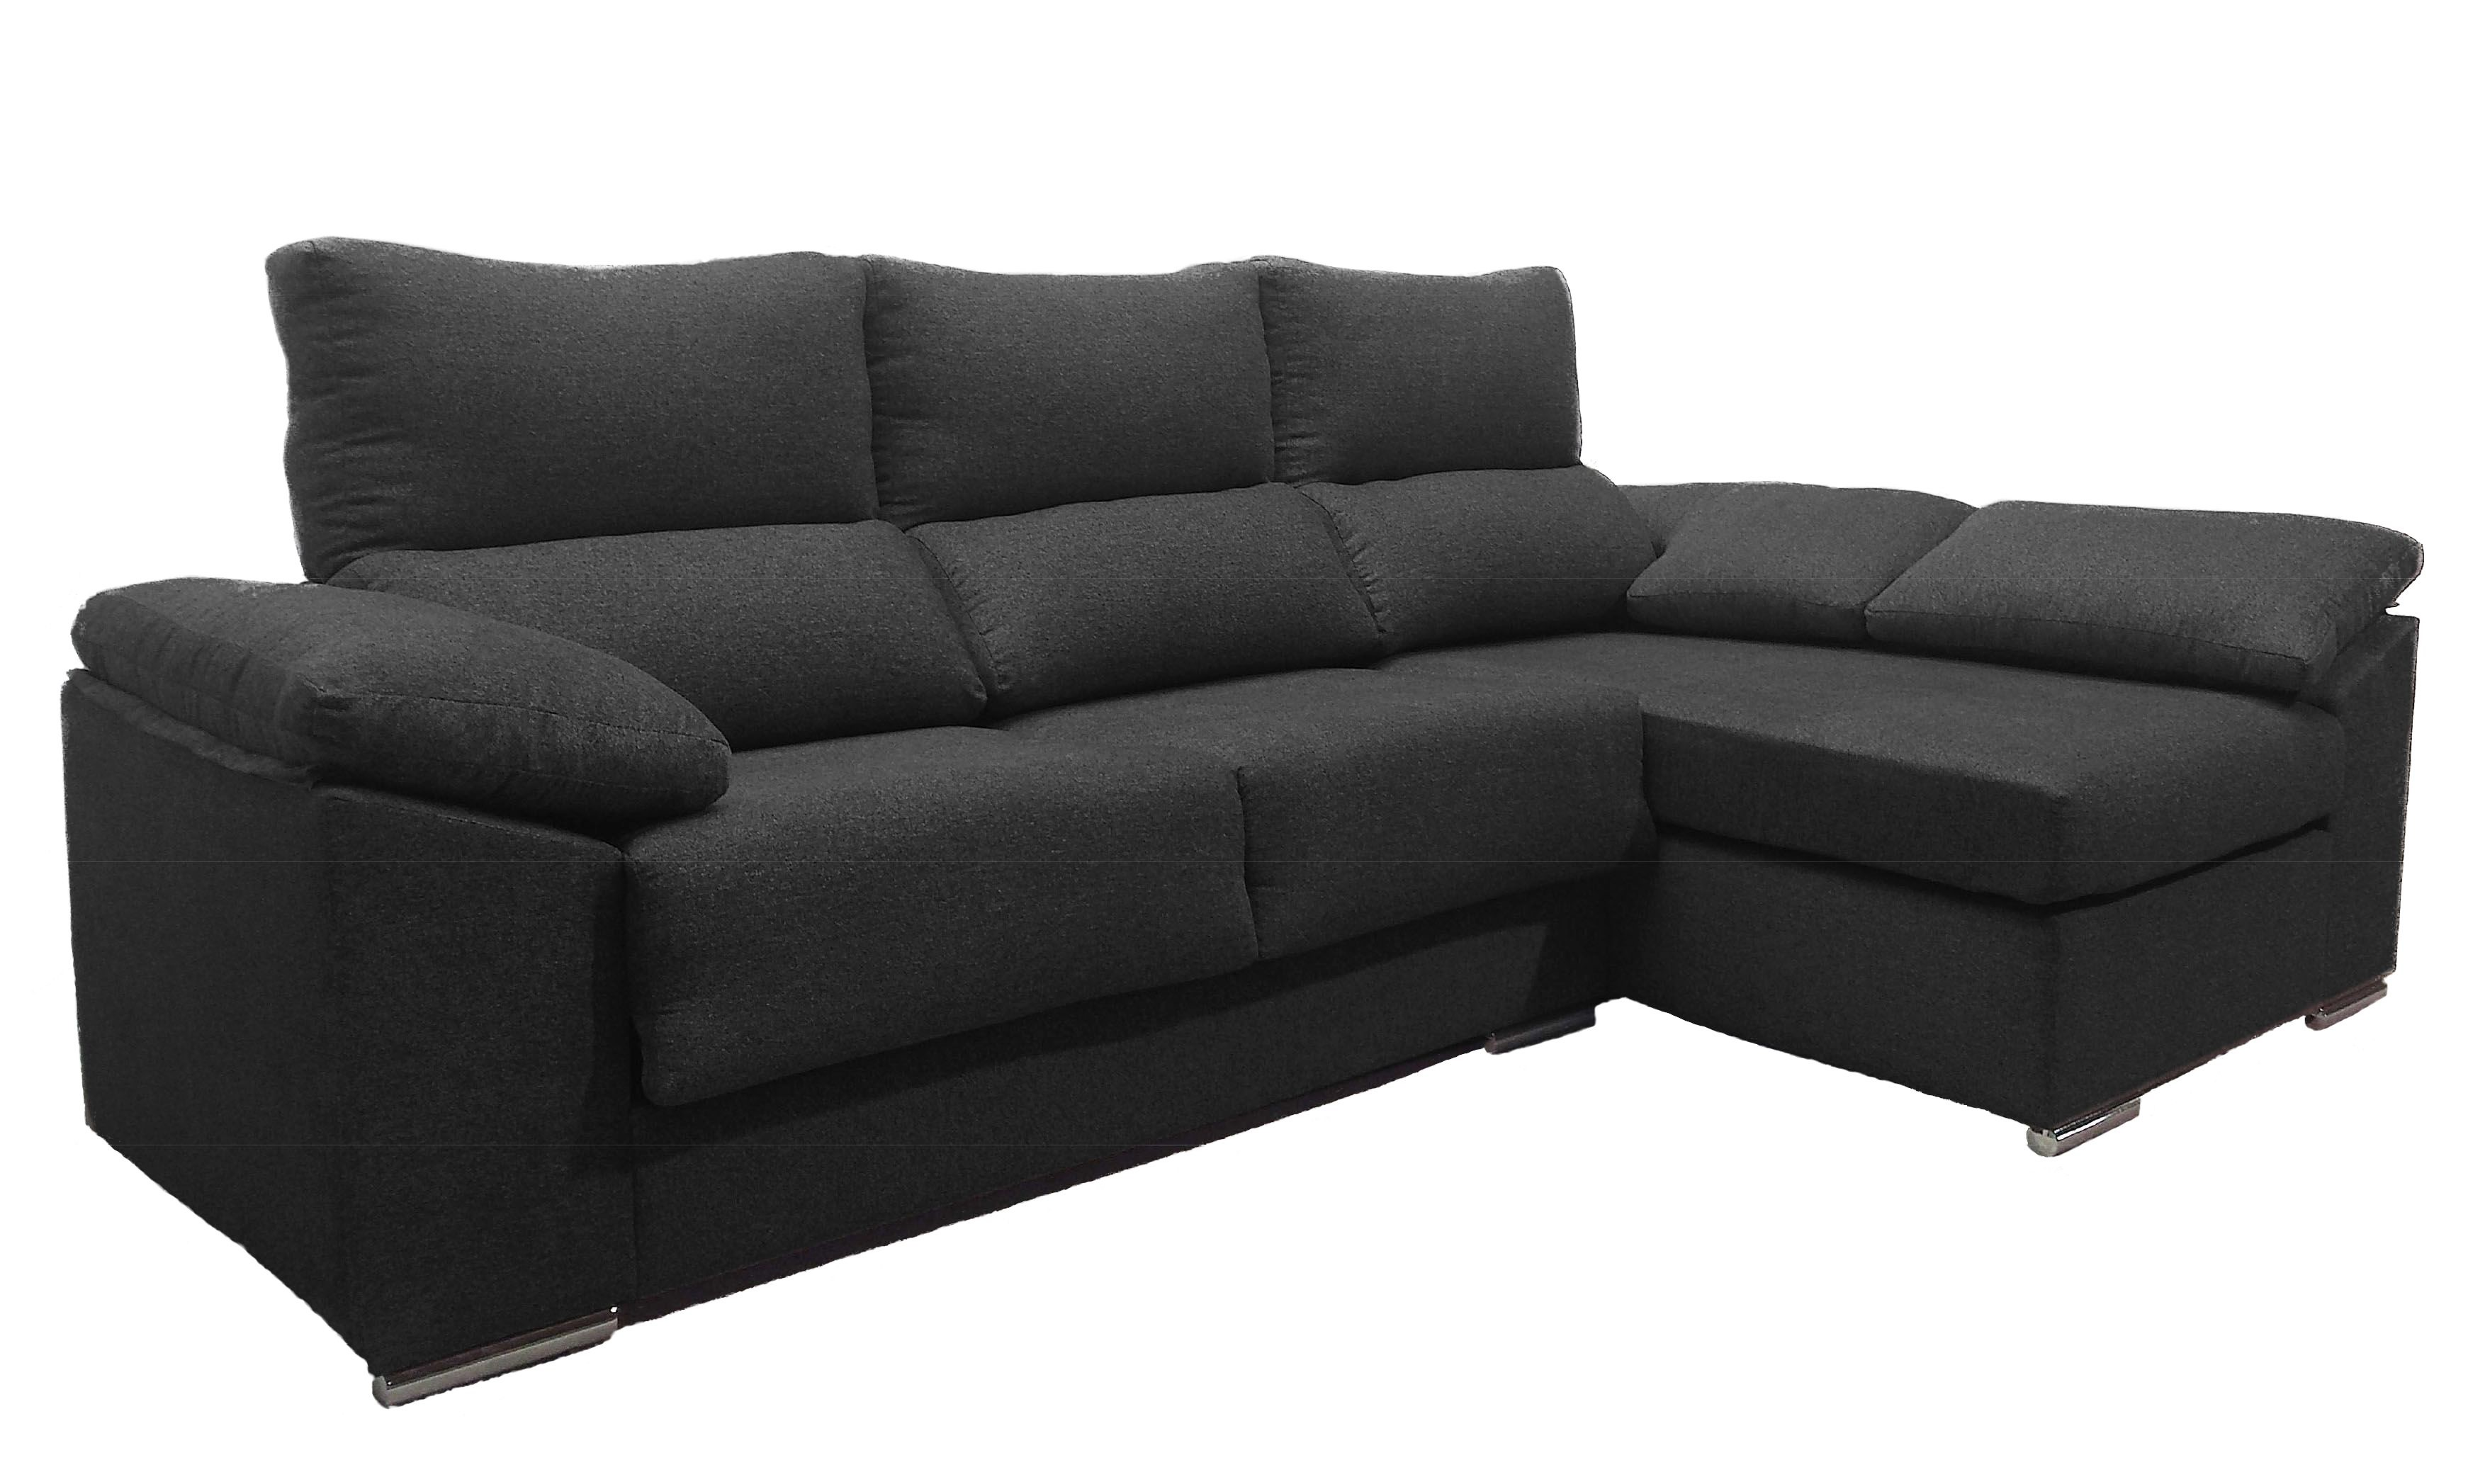 Chaise longue sofa baratos for Sofas de piel economicos